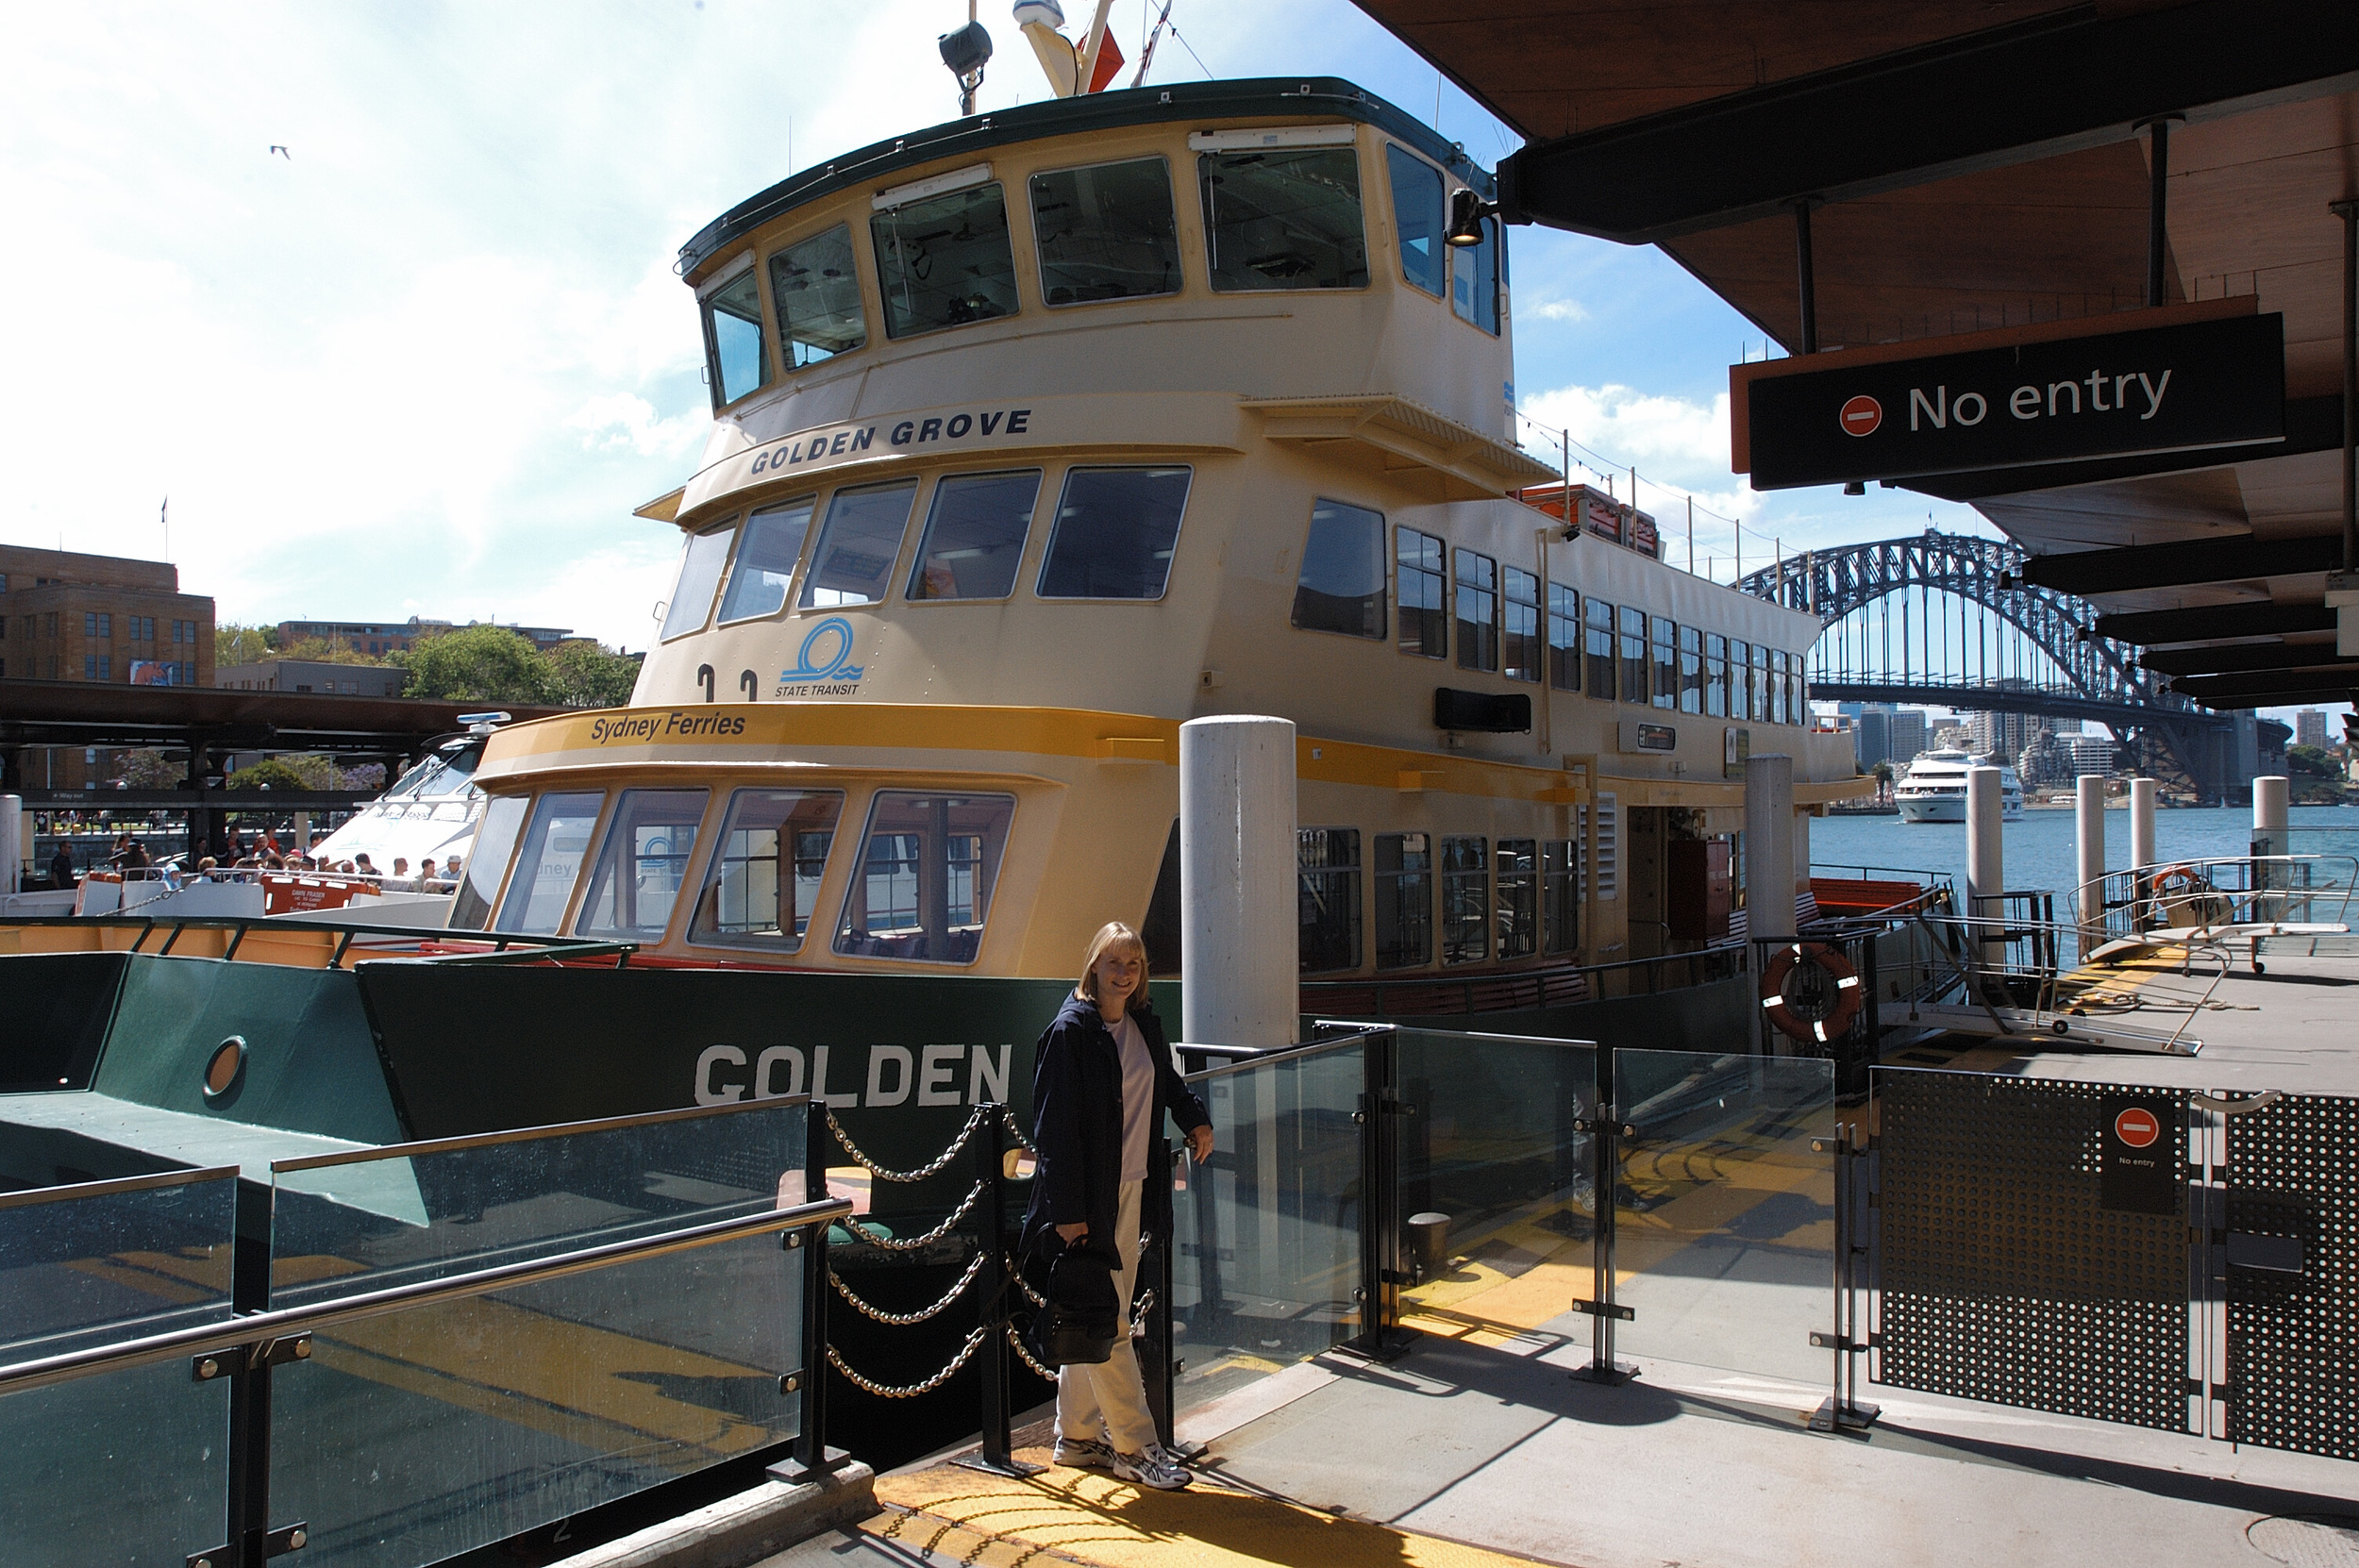 One of the Sydney Ferries